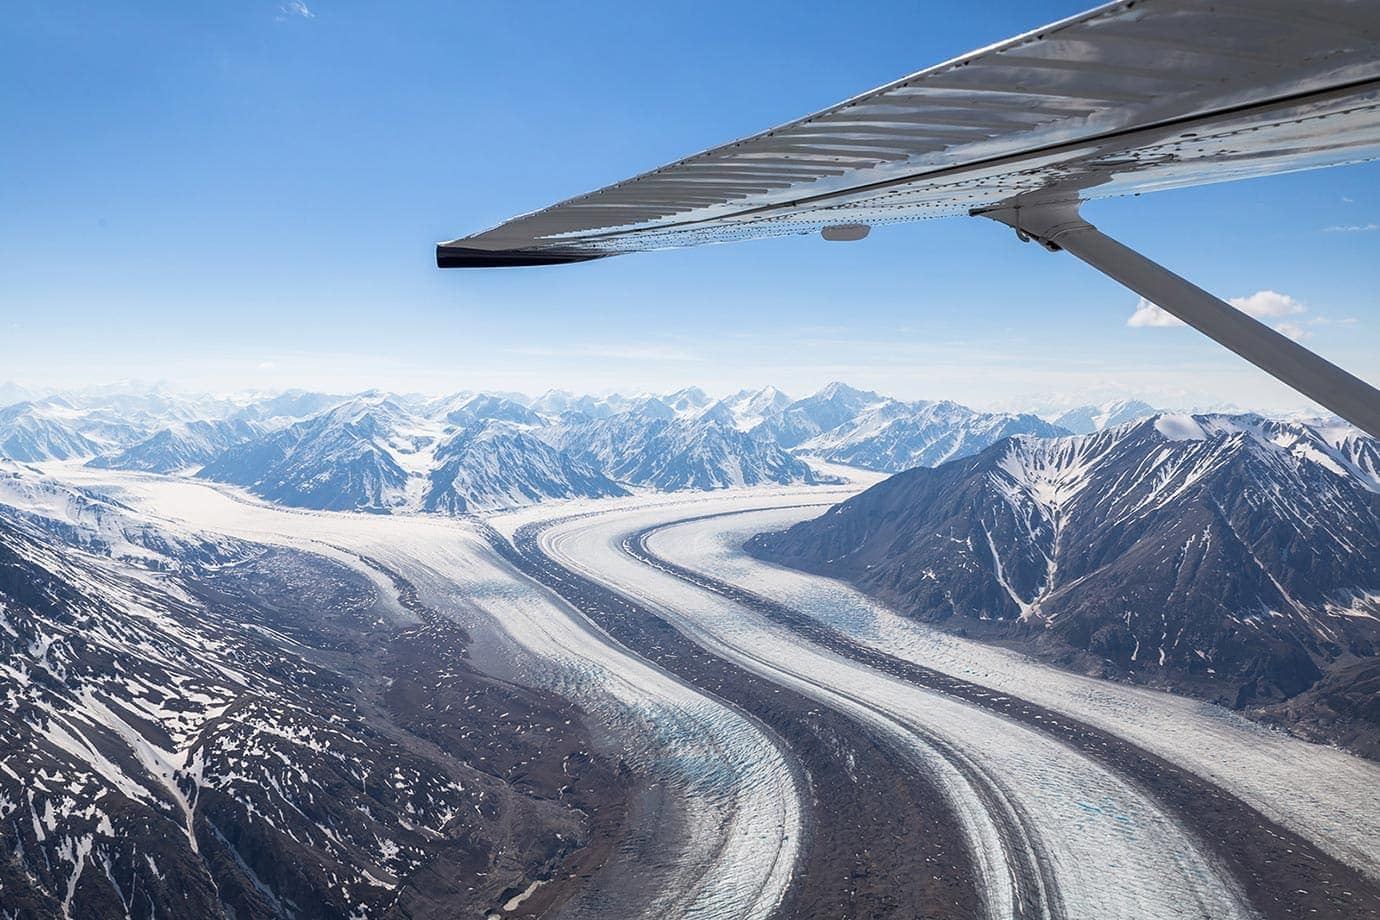 Flying over Kluane National Park